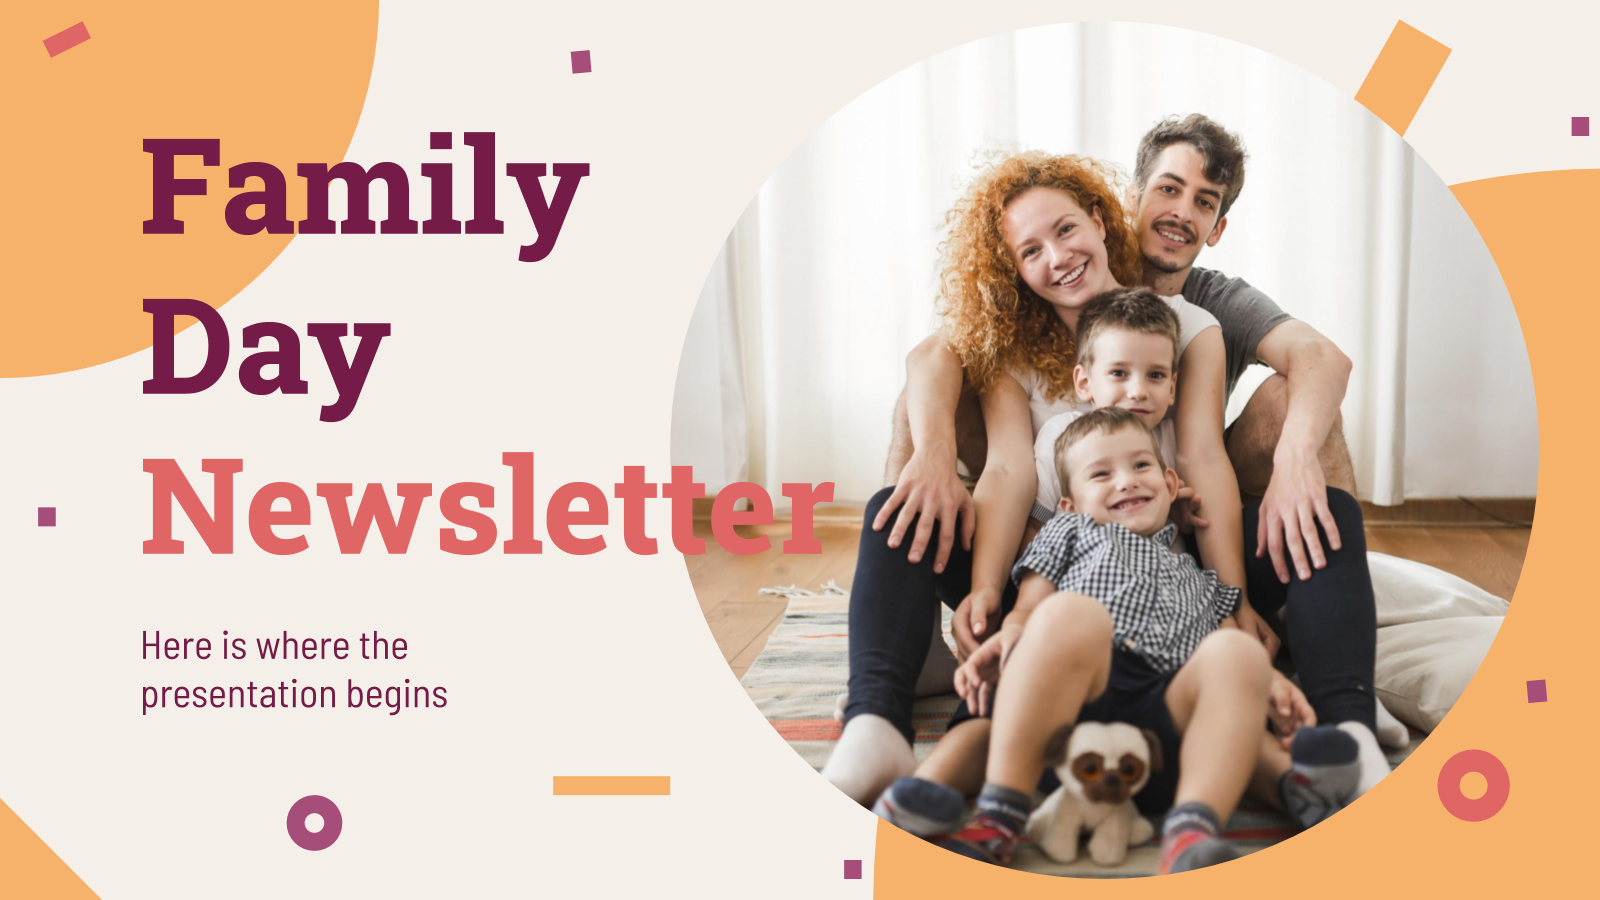 Family Day Newsletter presentation template